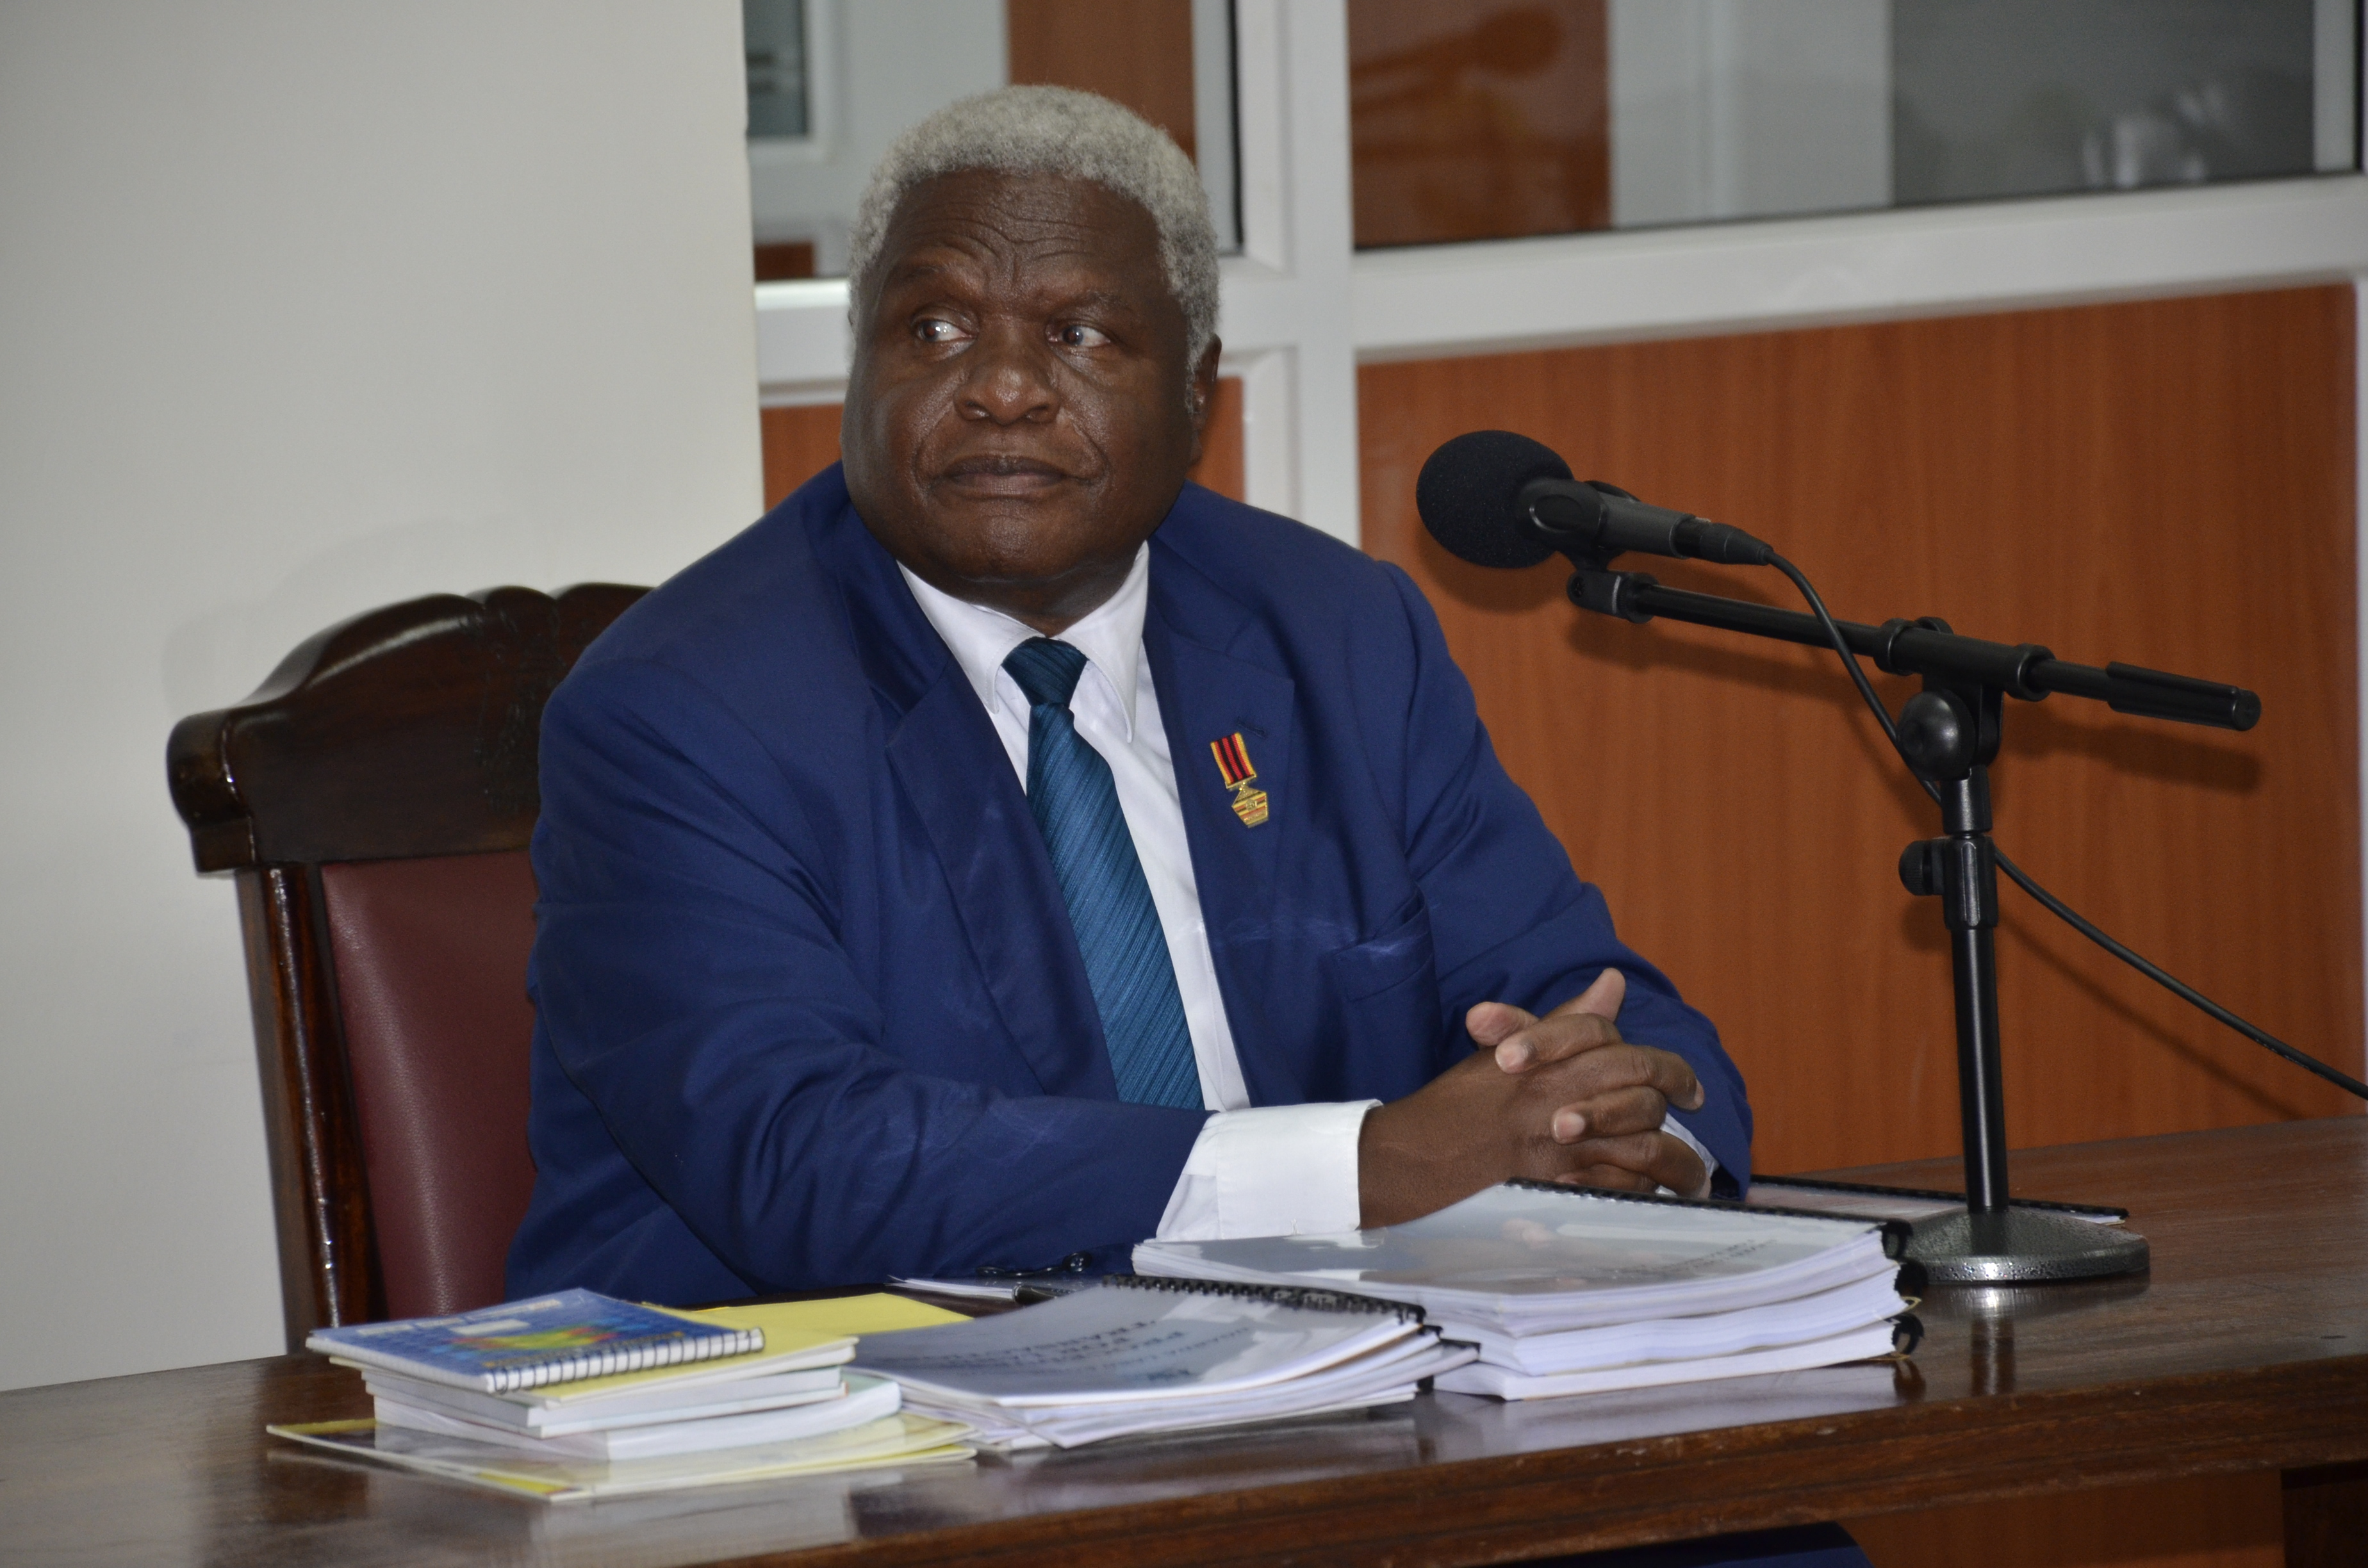 Former Uganda Land Commission Chairperson Honourable Baguma Isoke appearing before the Commission of Inquiry into land matters